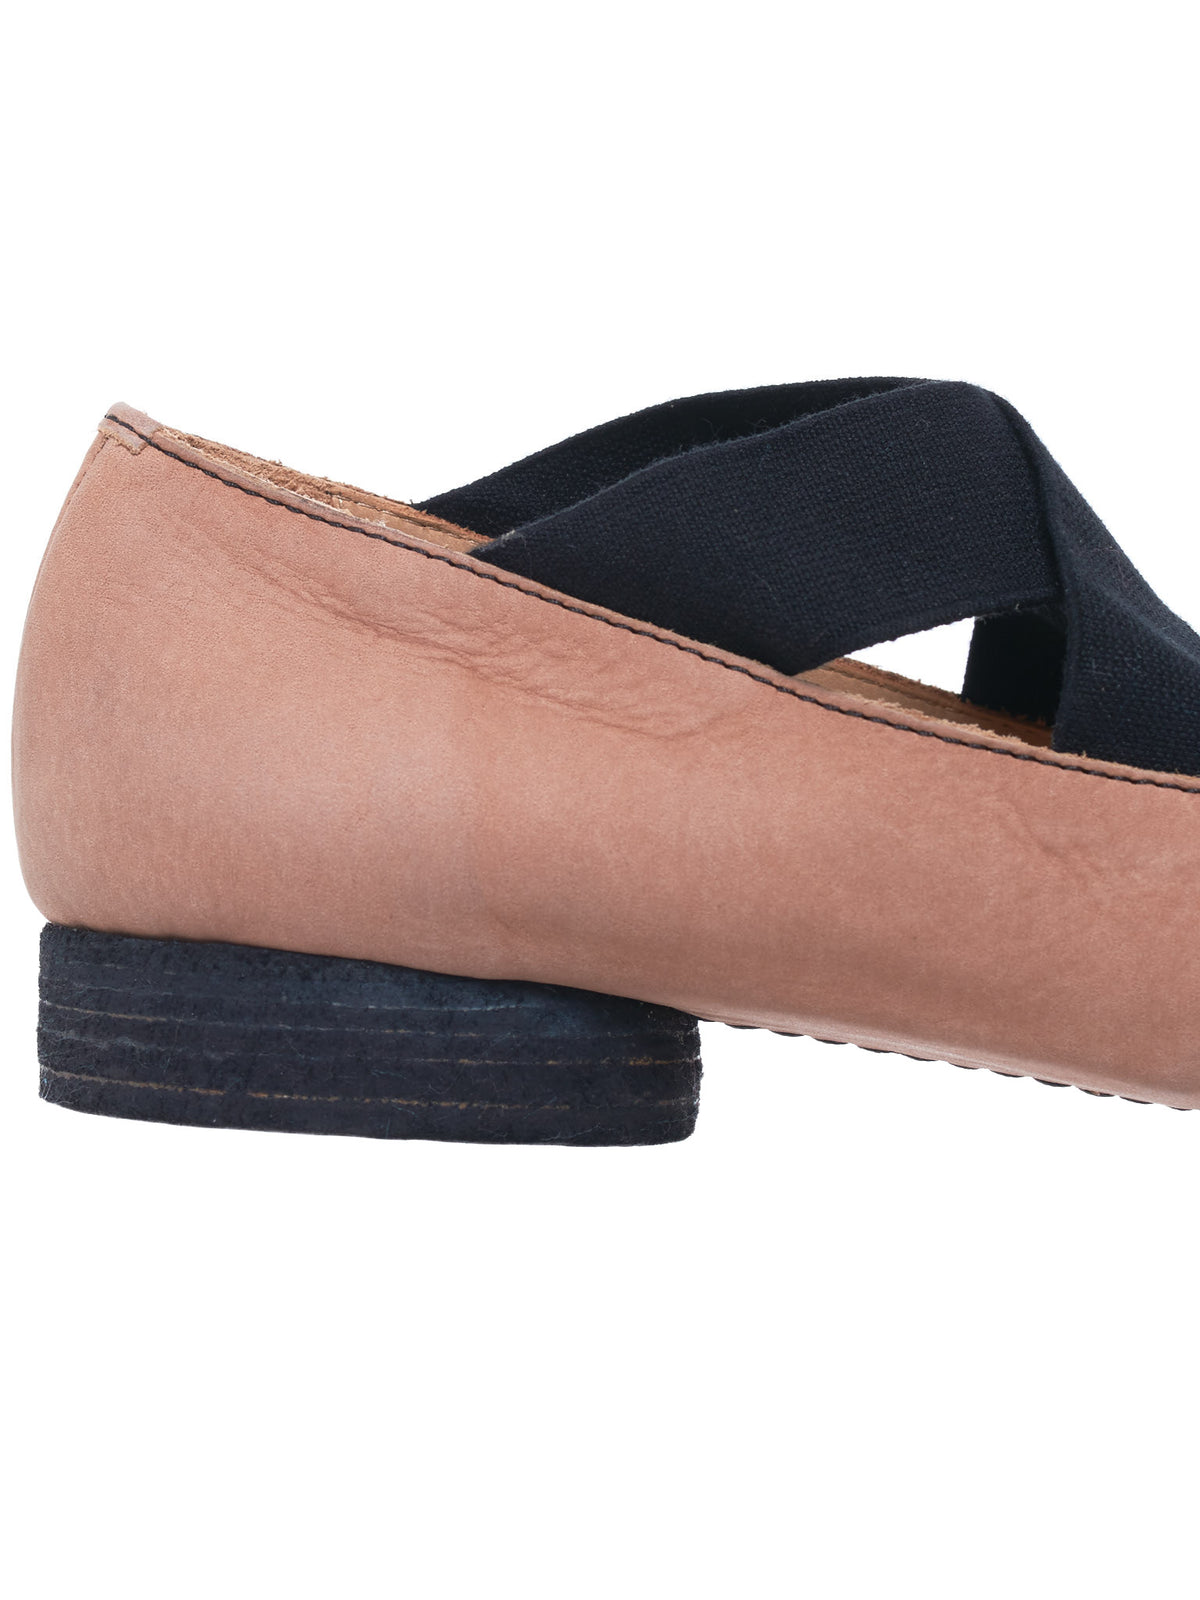 Ballet Shoes (US9003I92PB-ROSE-BLACK)